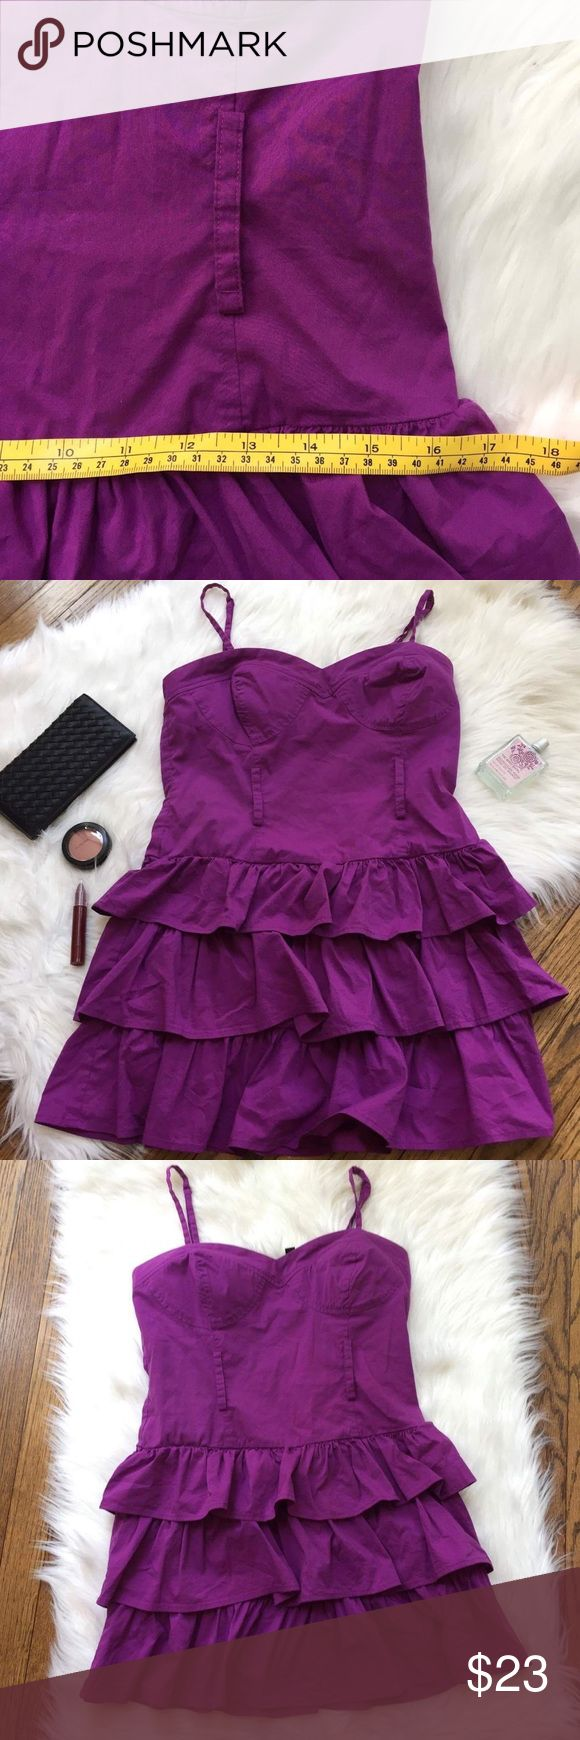 2b BeBe Spaghetti Strap Mini  Ruffle Purple Dress Preowned 2b BeBe Dress Mini Dress Fitted top Ruffle layering at the bottom Lightly padded Adjustable spaghetti strap Back zipper Belt loops (no belt included) Great for going out and to wear at parties Color: purple Gently used condition with no stains or holes Size: medium Please see pictures for fabric content and approximately measurements while flat, unstretched.  Feel free to make an offer or bundle & save!  (B84) 2B Bebe Dresses Mini